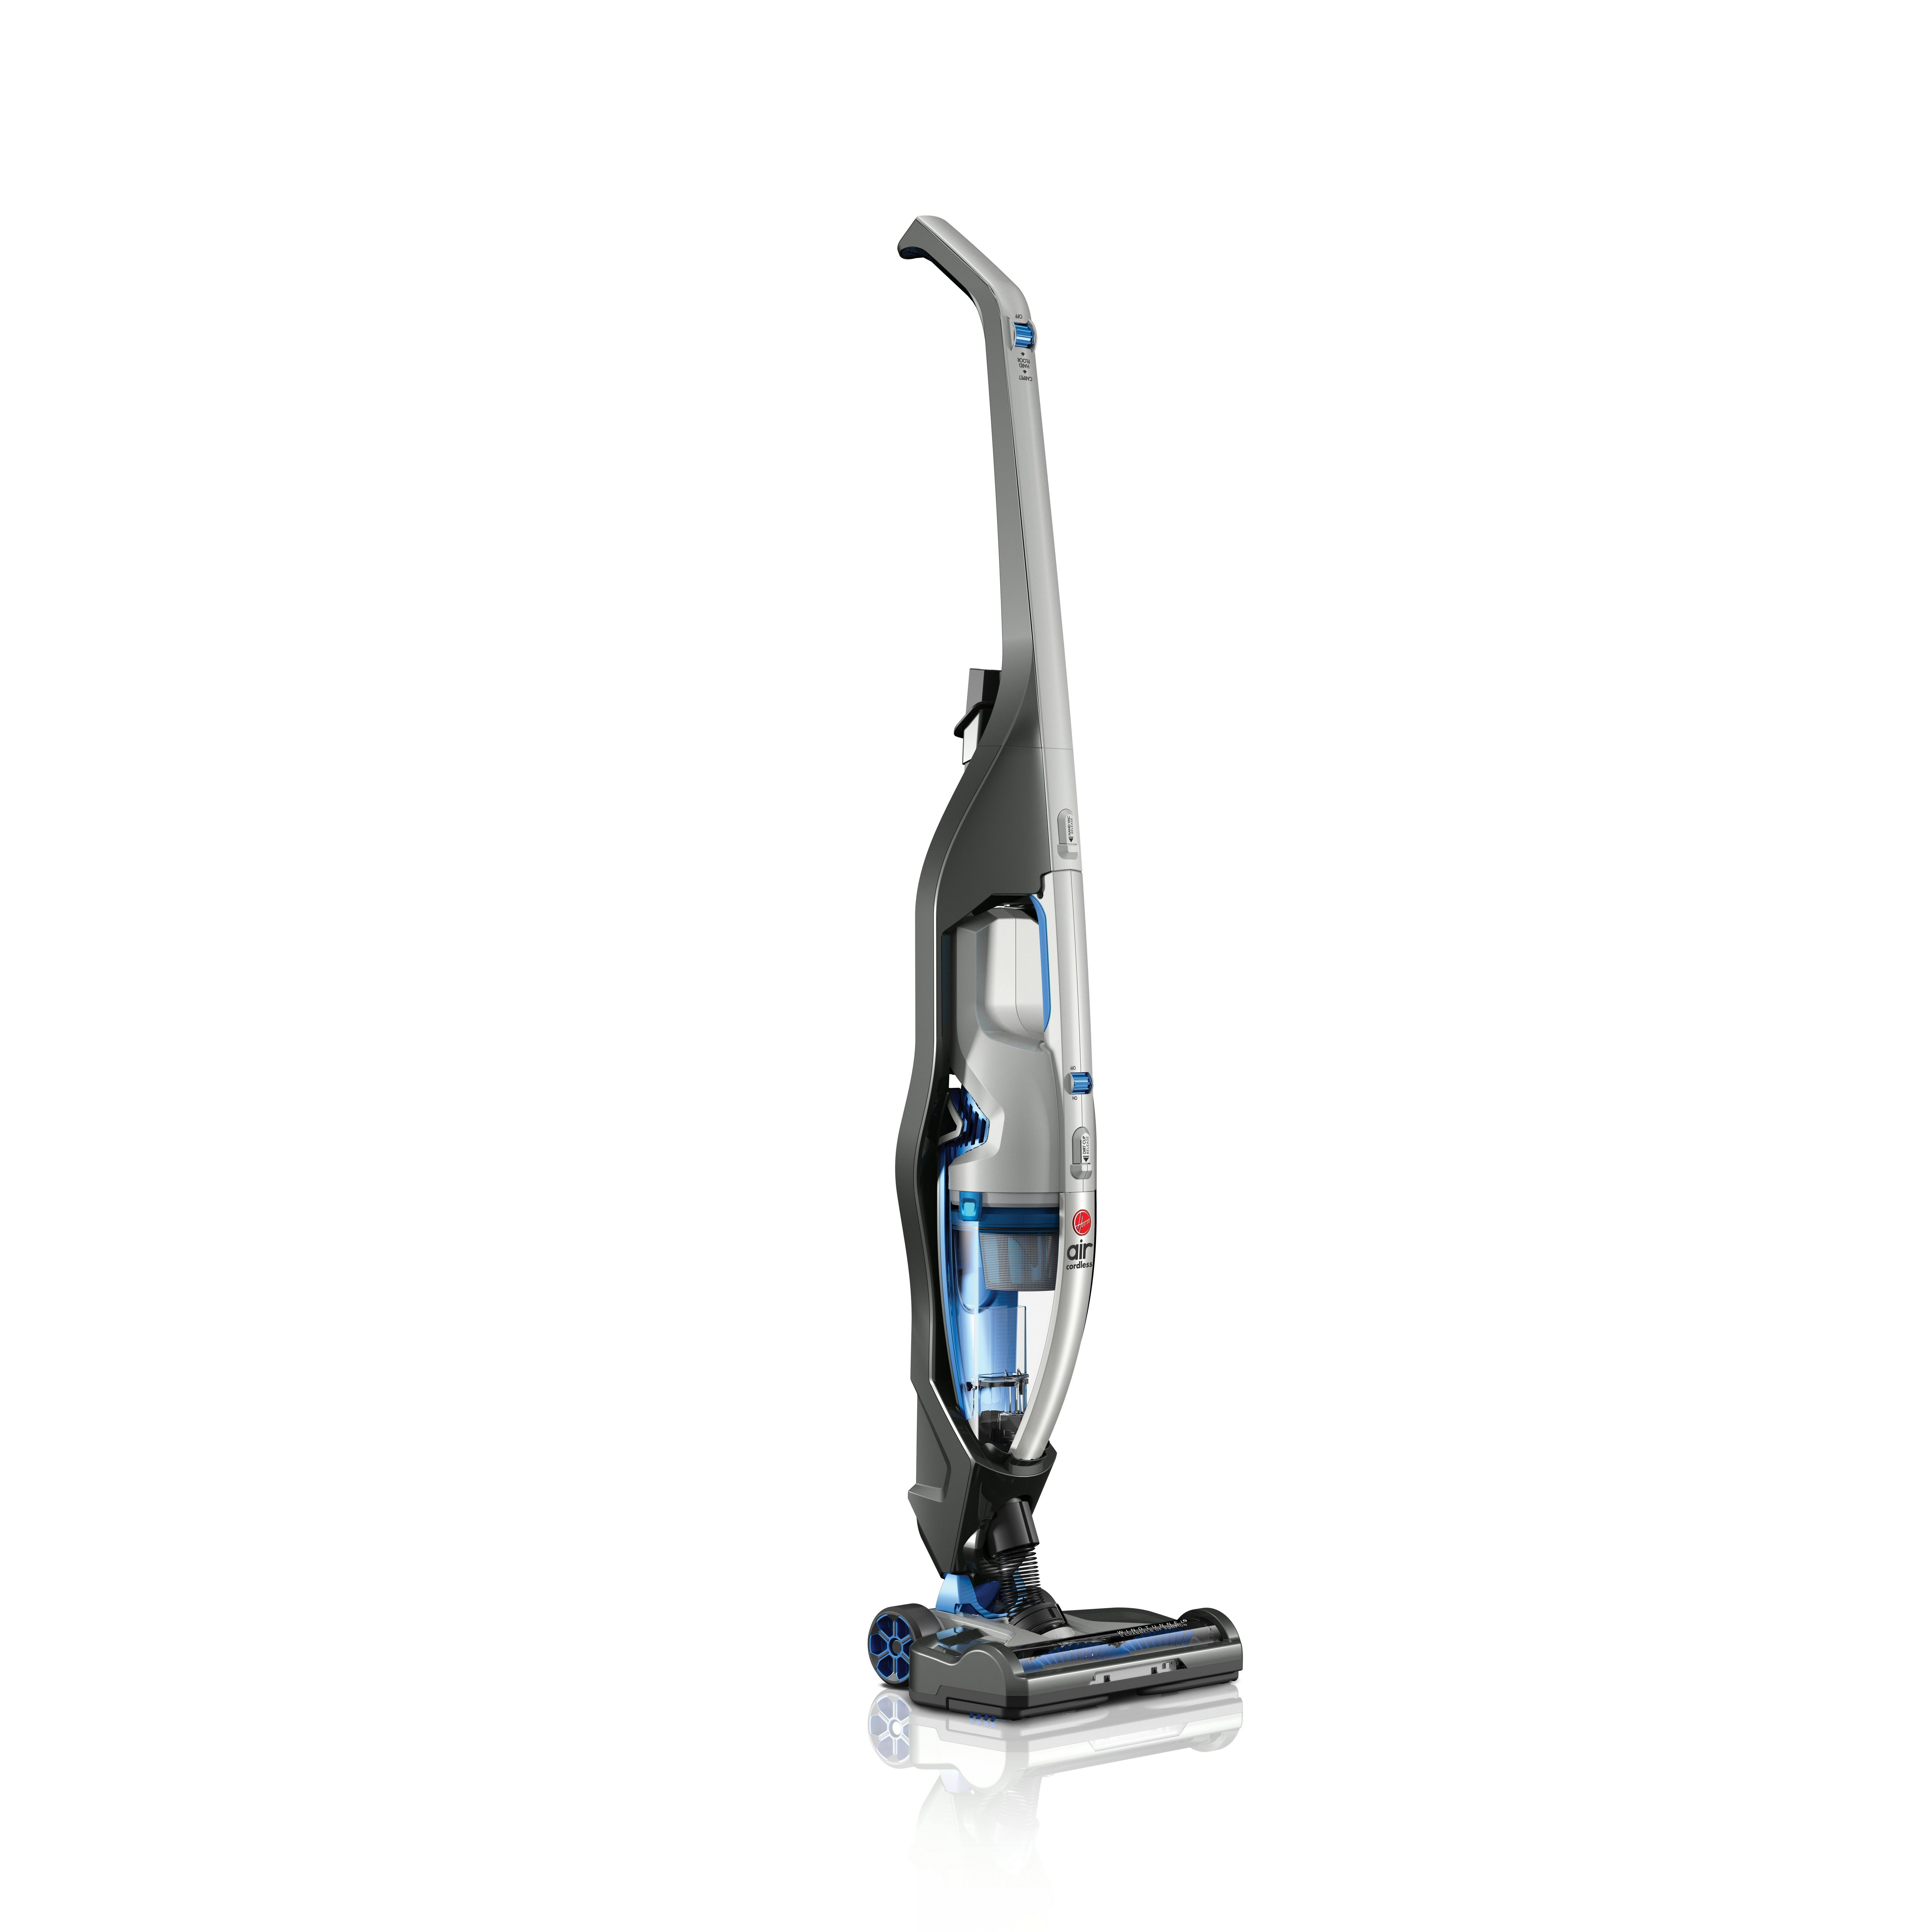 Hoover Air Cordless 2 in 1 Stick and Handheld Vacuum BH52100PC